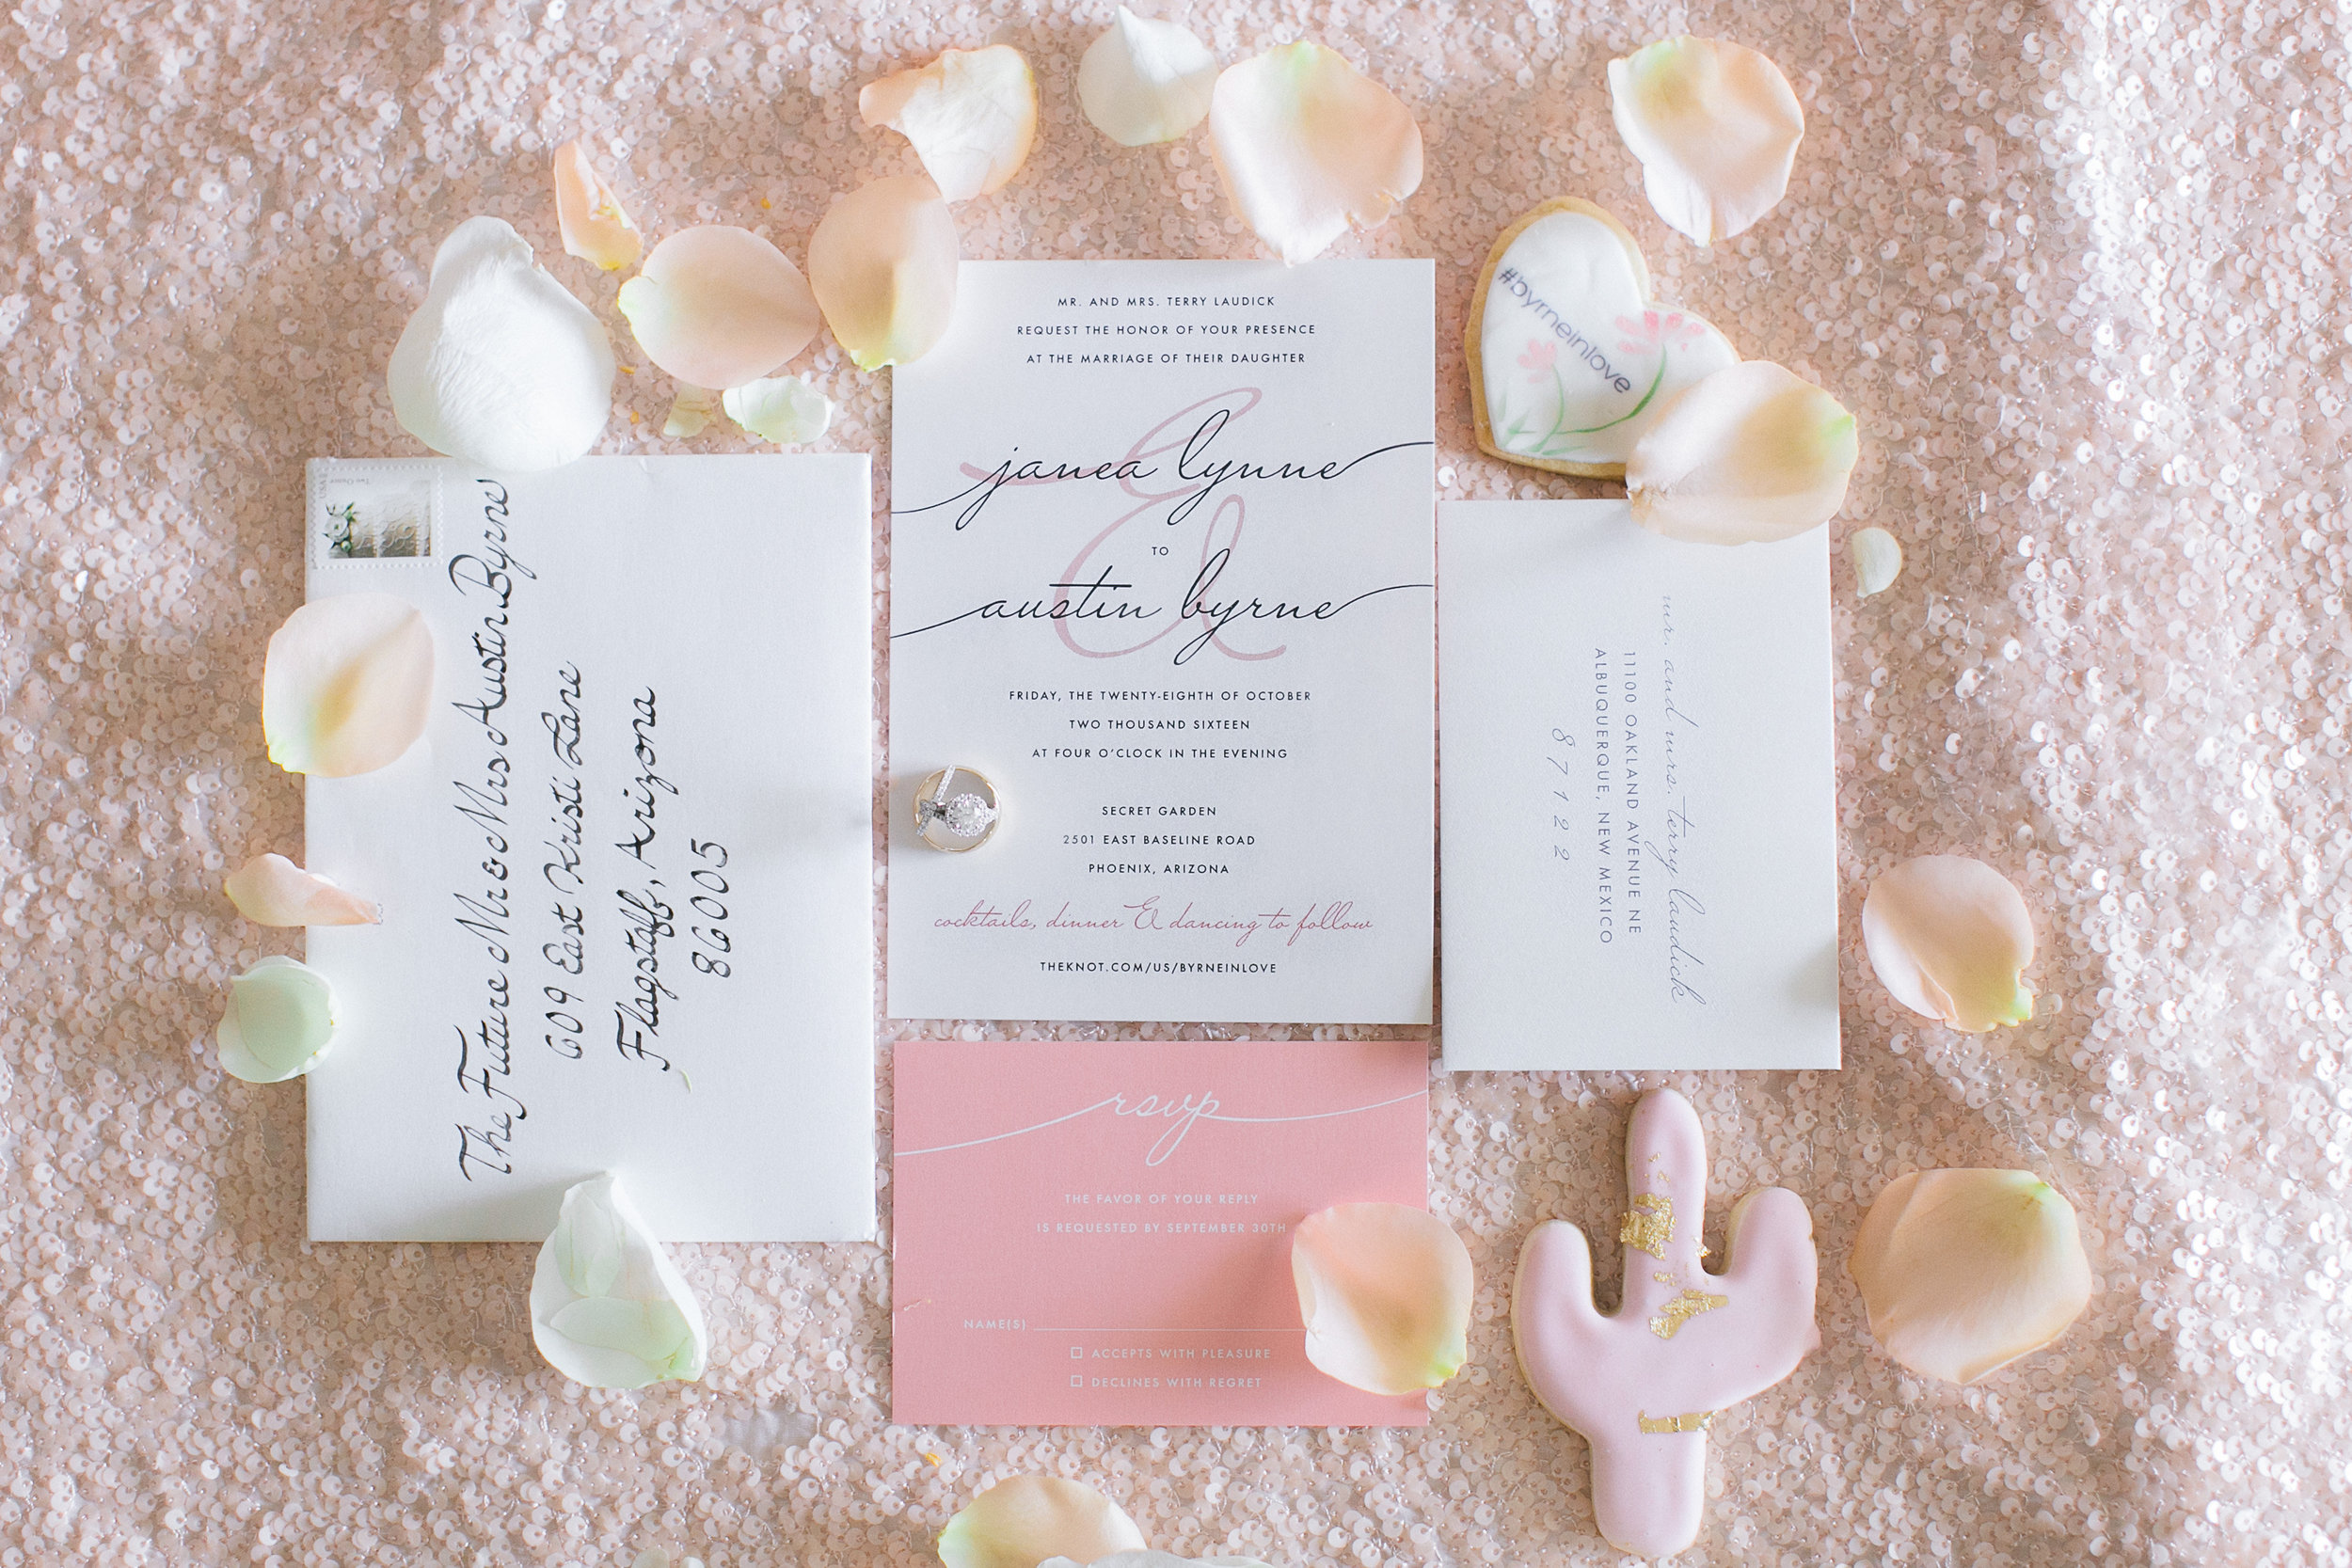 Wedding details, blush wedding, wedding invitation, cactus cookies, desert wedding, wedding planner, andrew jade photography, a day to cherish weddings